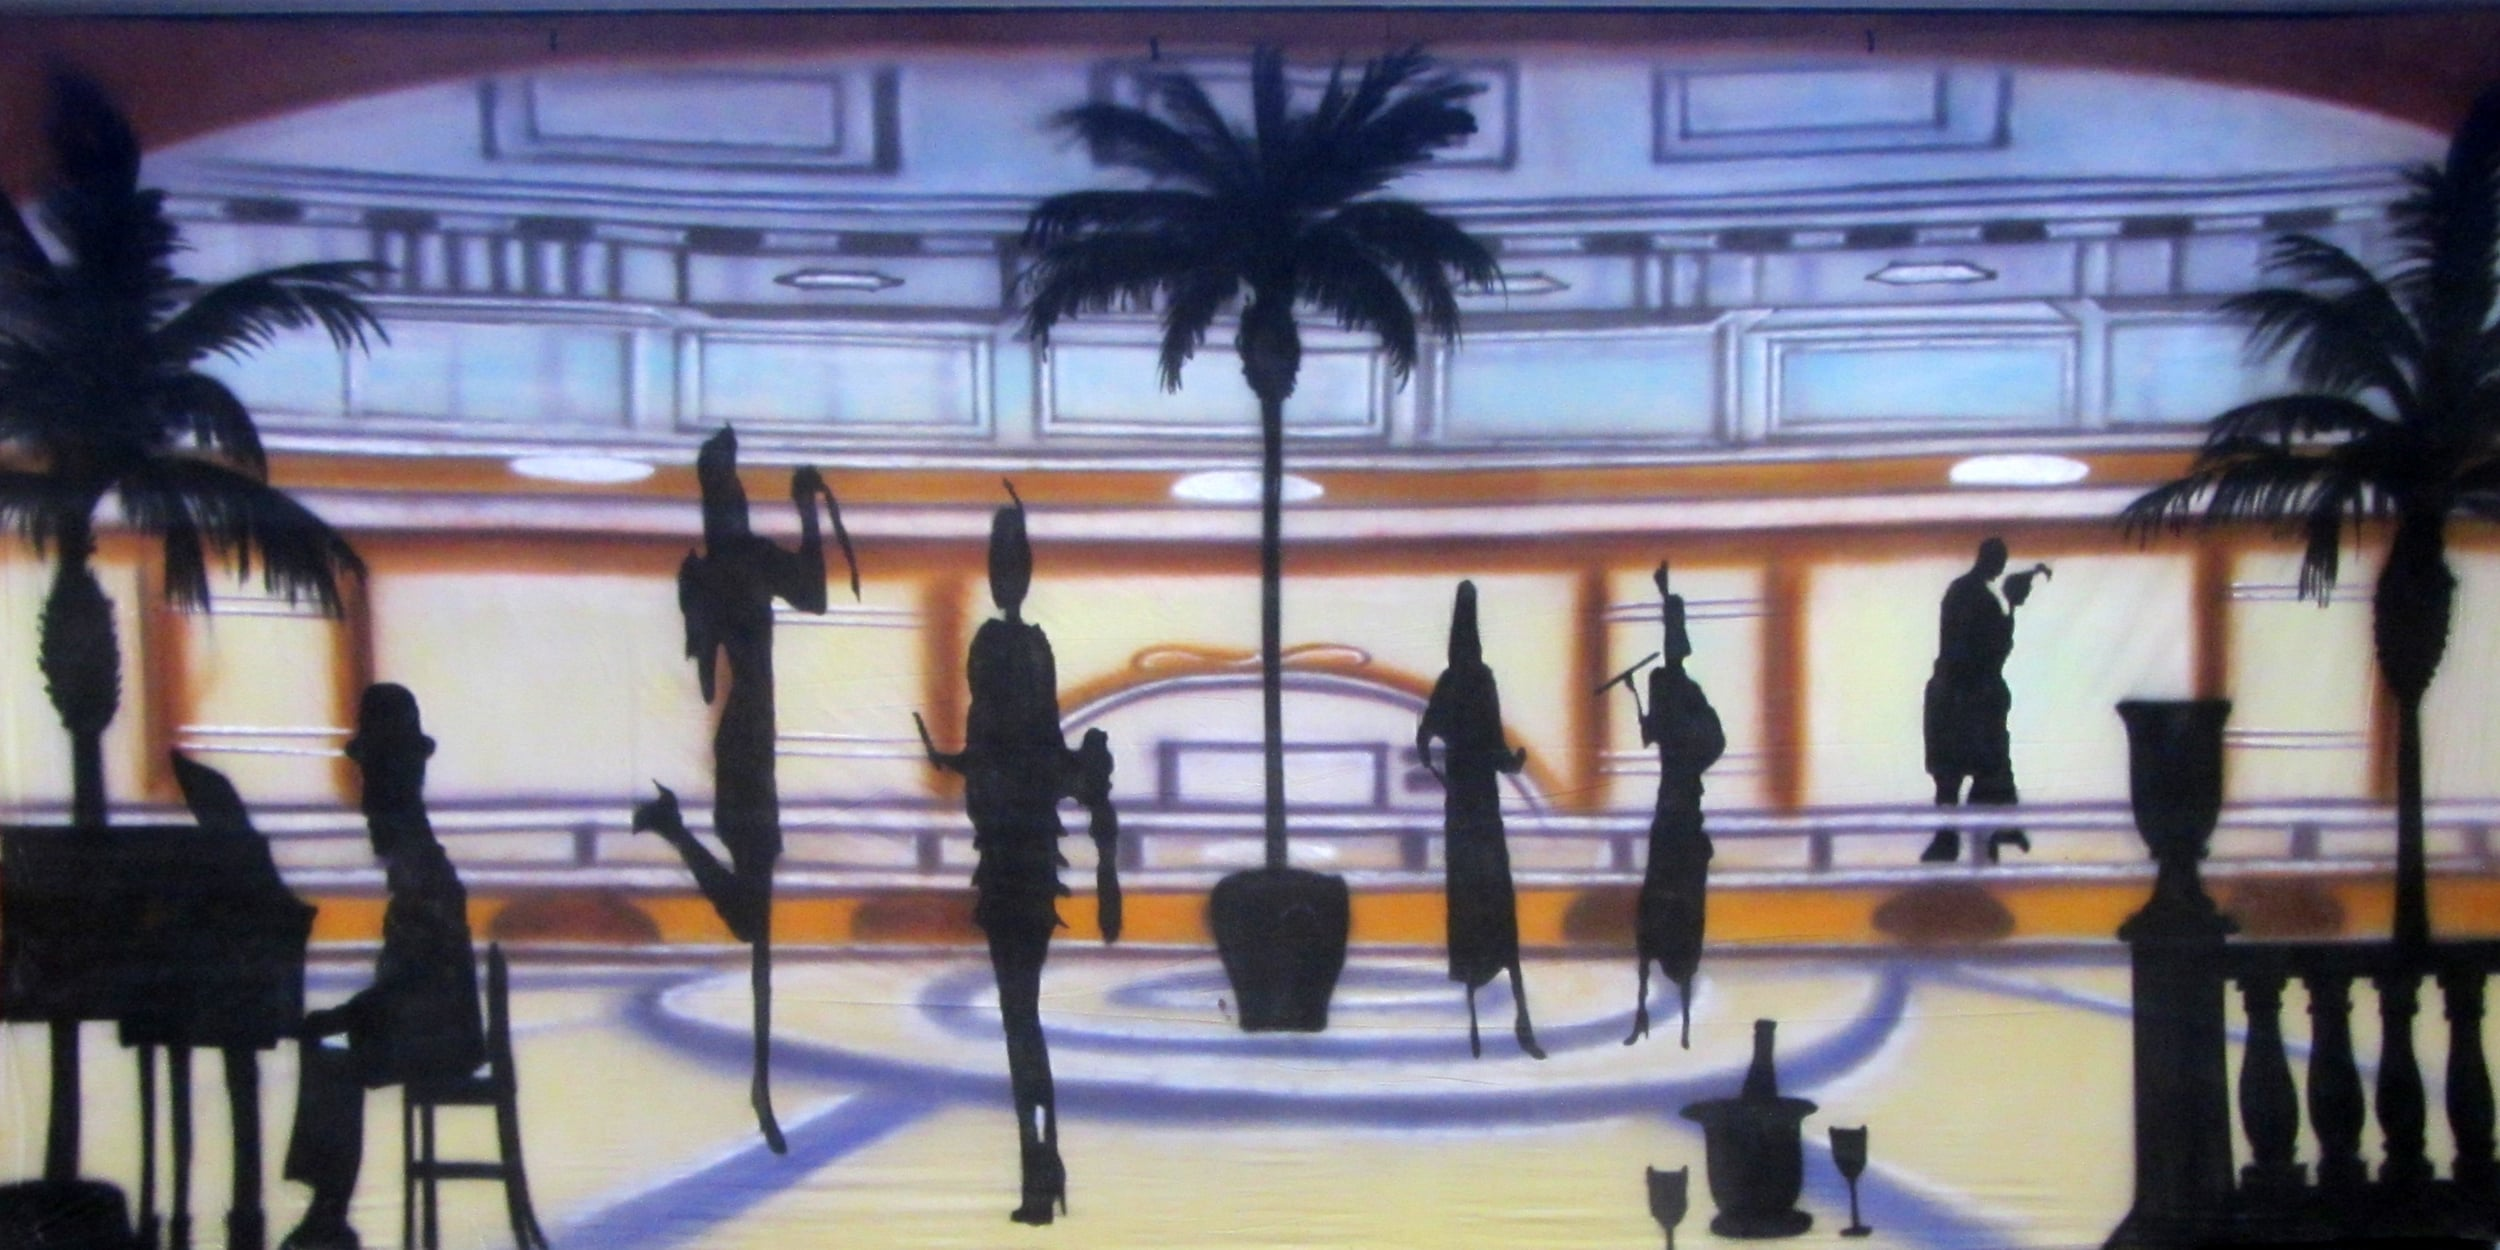 1920s Backdrop - Palm Court with Piano  Measures approximately 6m x 3m (20' x 10')  Can be supplied with freestanding, goal post style stand